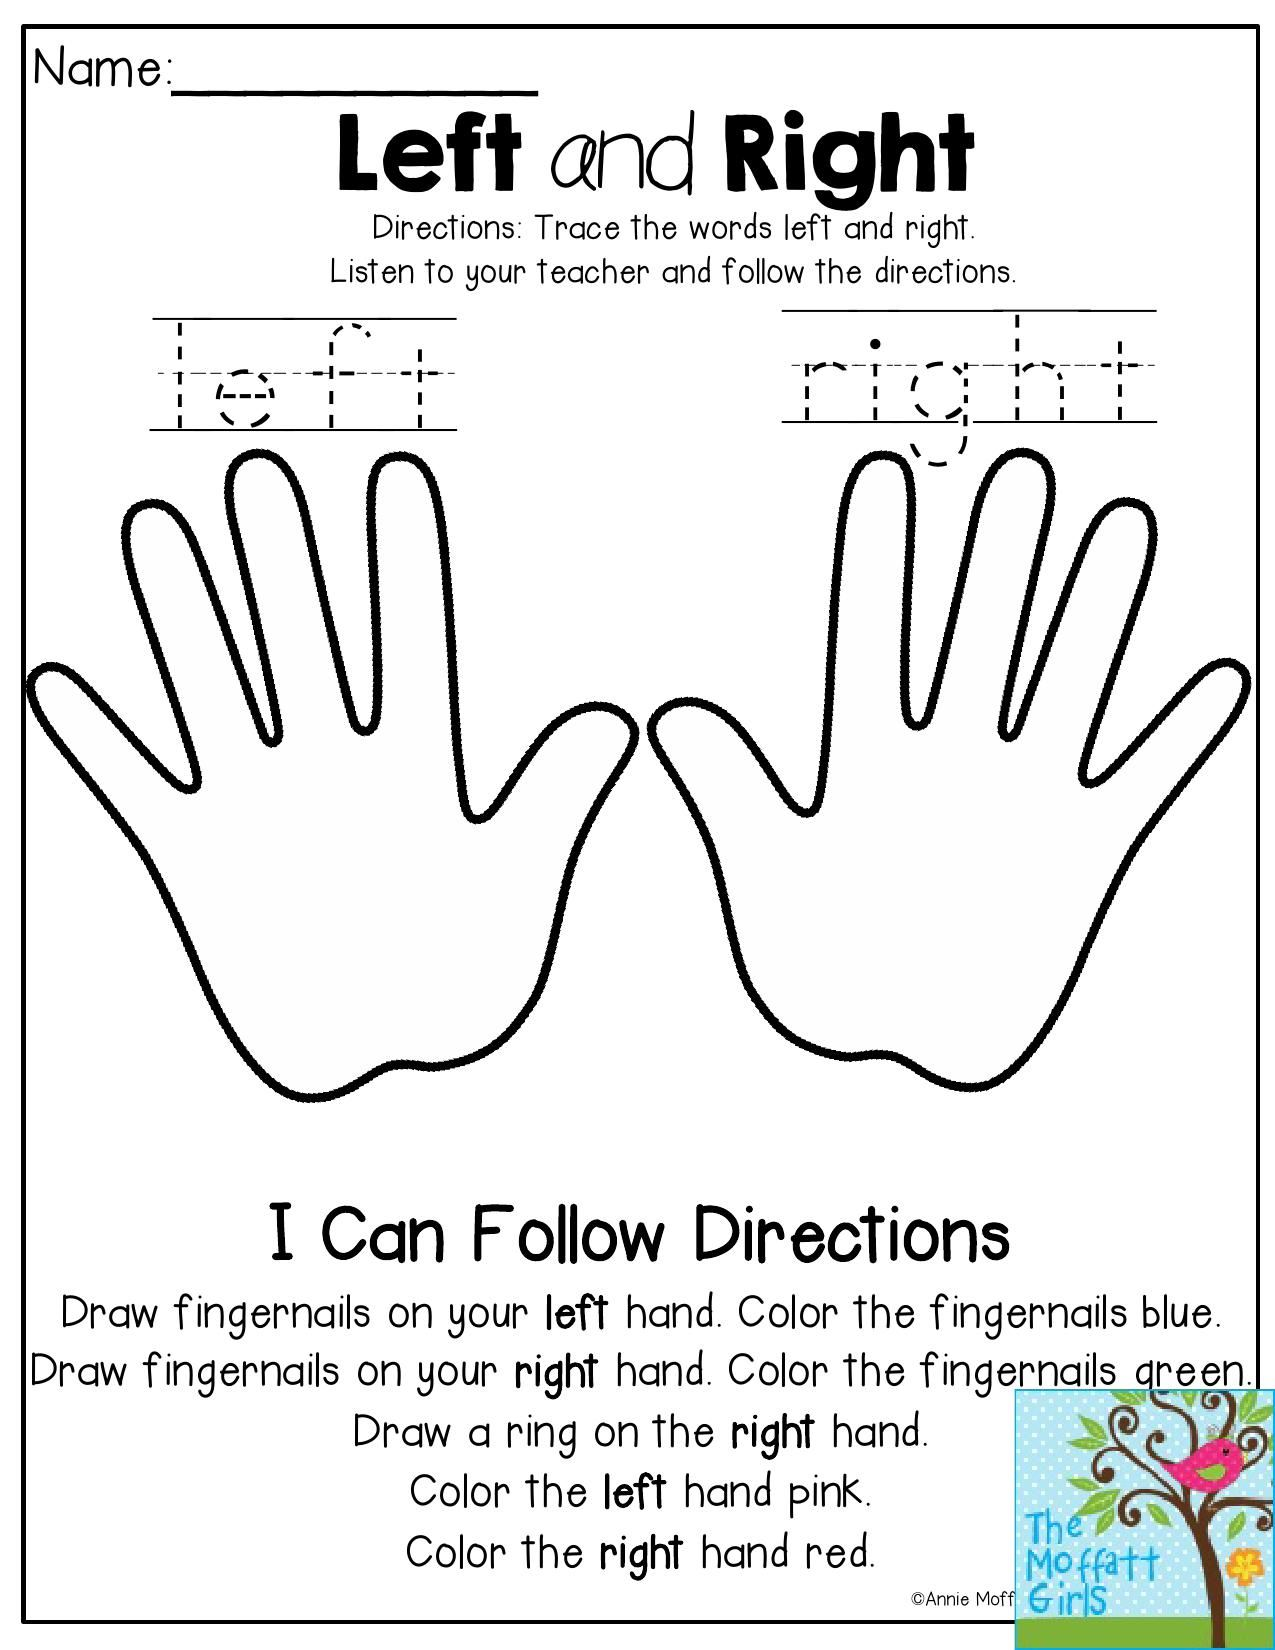 worksheet Following Directions Worksheet Preschool left and right listen to the teacher follow directions this is such preschool assessmentkindergarten worksheetsba